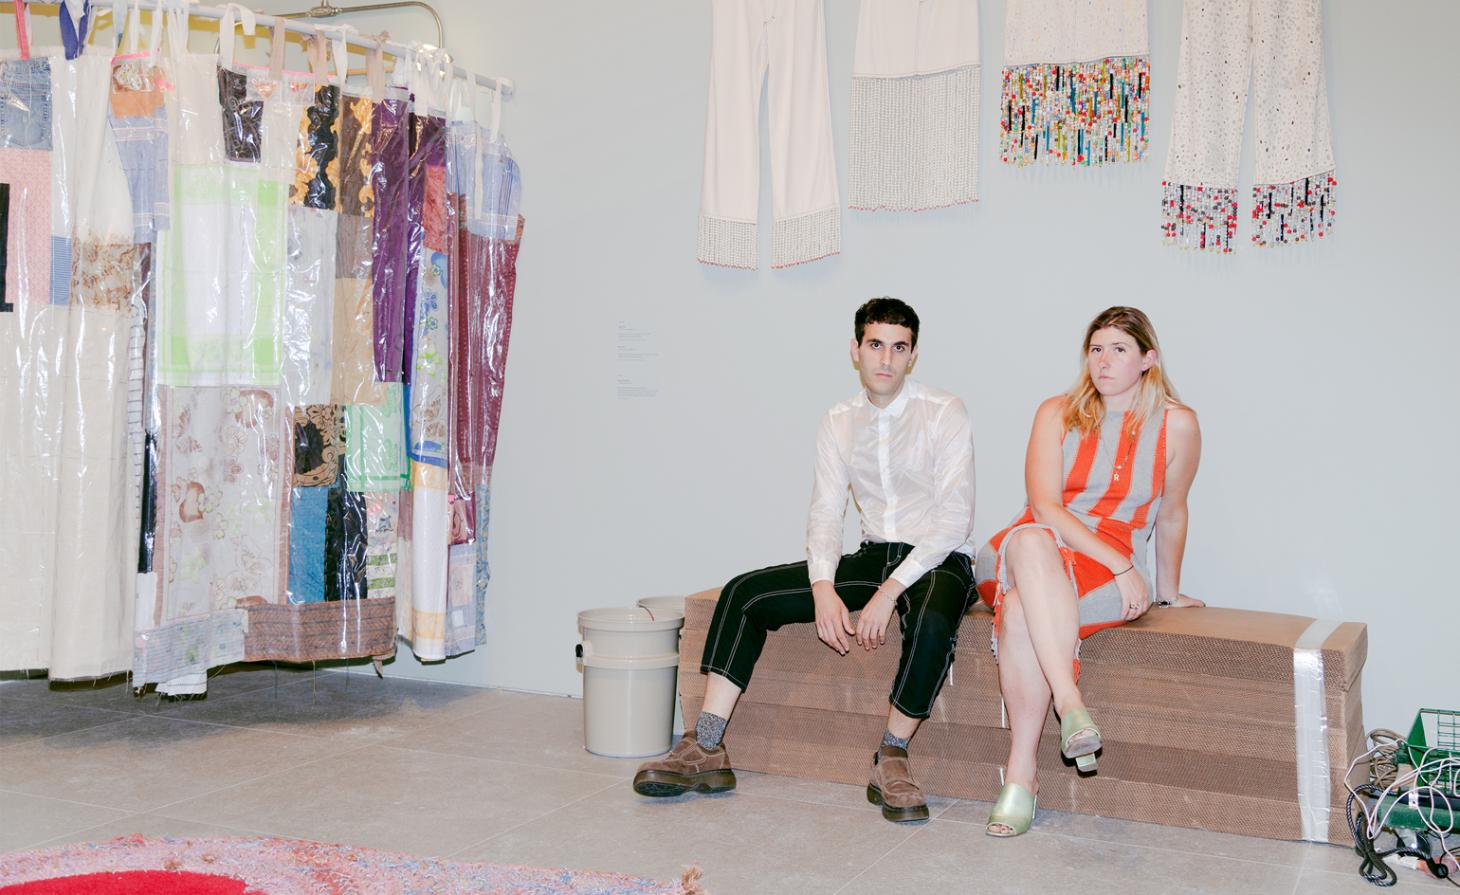 Portrait image of Mike Eckhaus and Zoe Latta